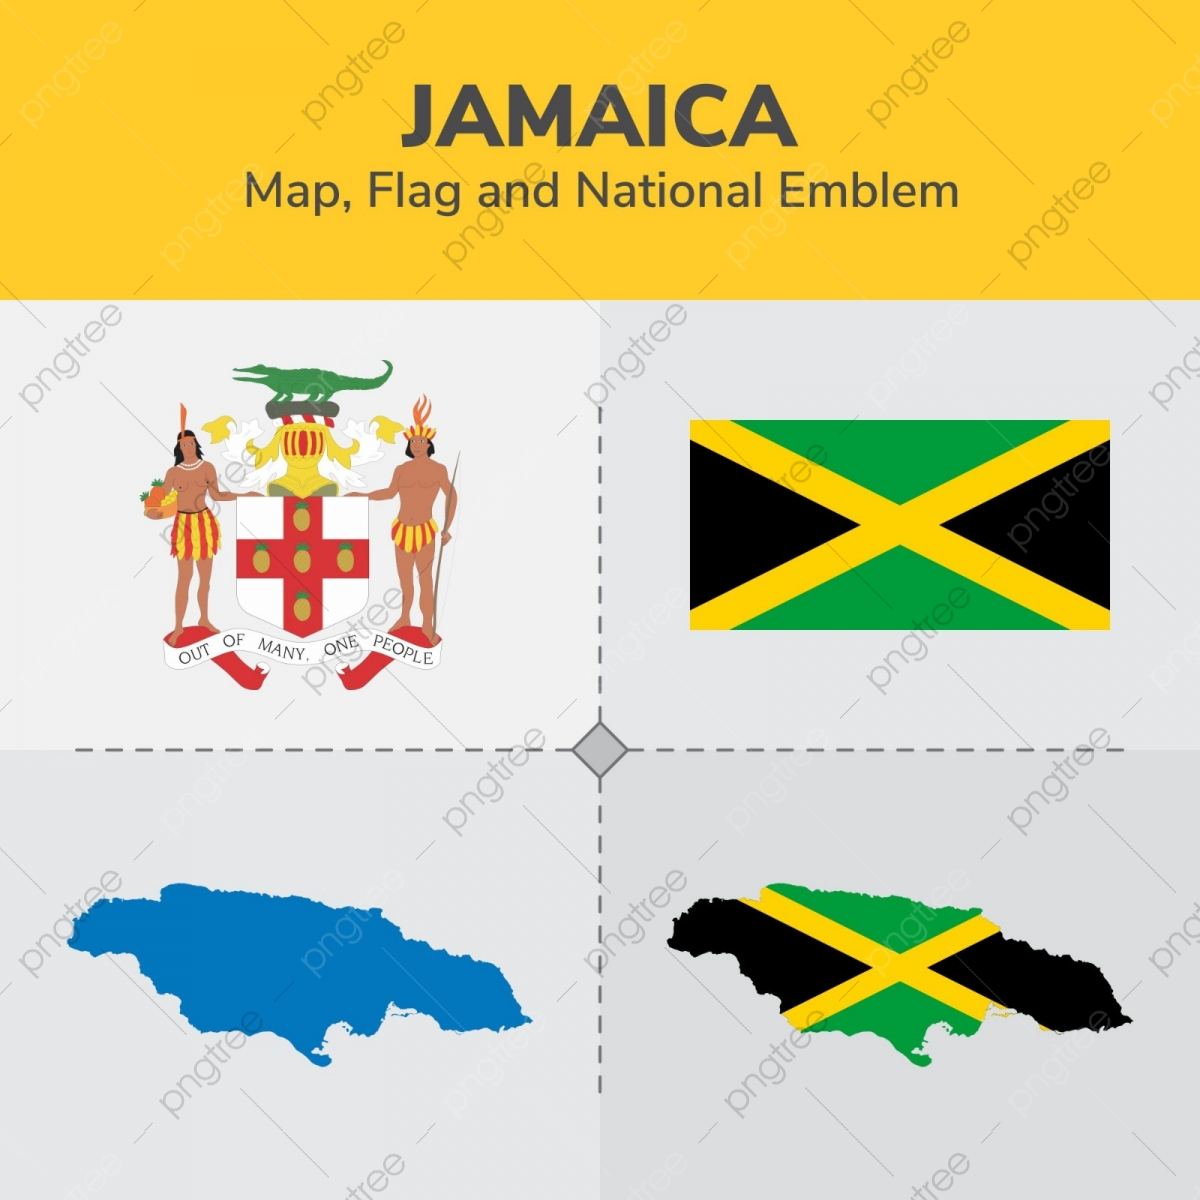 d5608cac0 Jamaica Map Flag And National Emblem, Continents, Countries, Map PNG ...